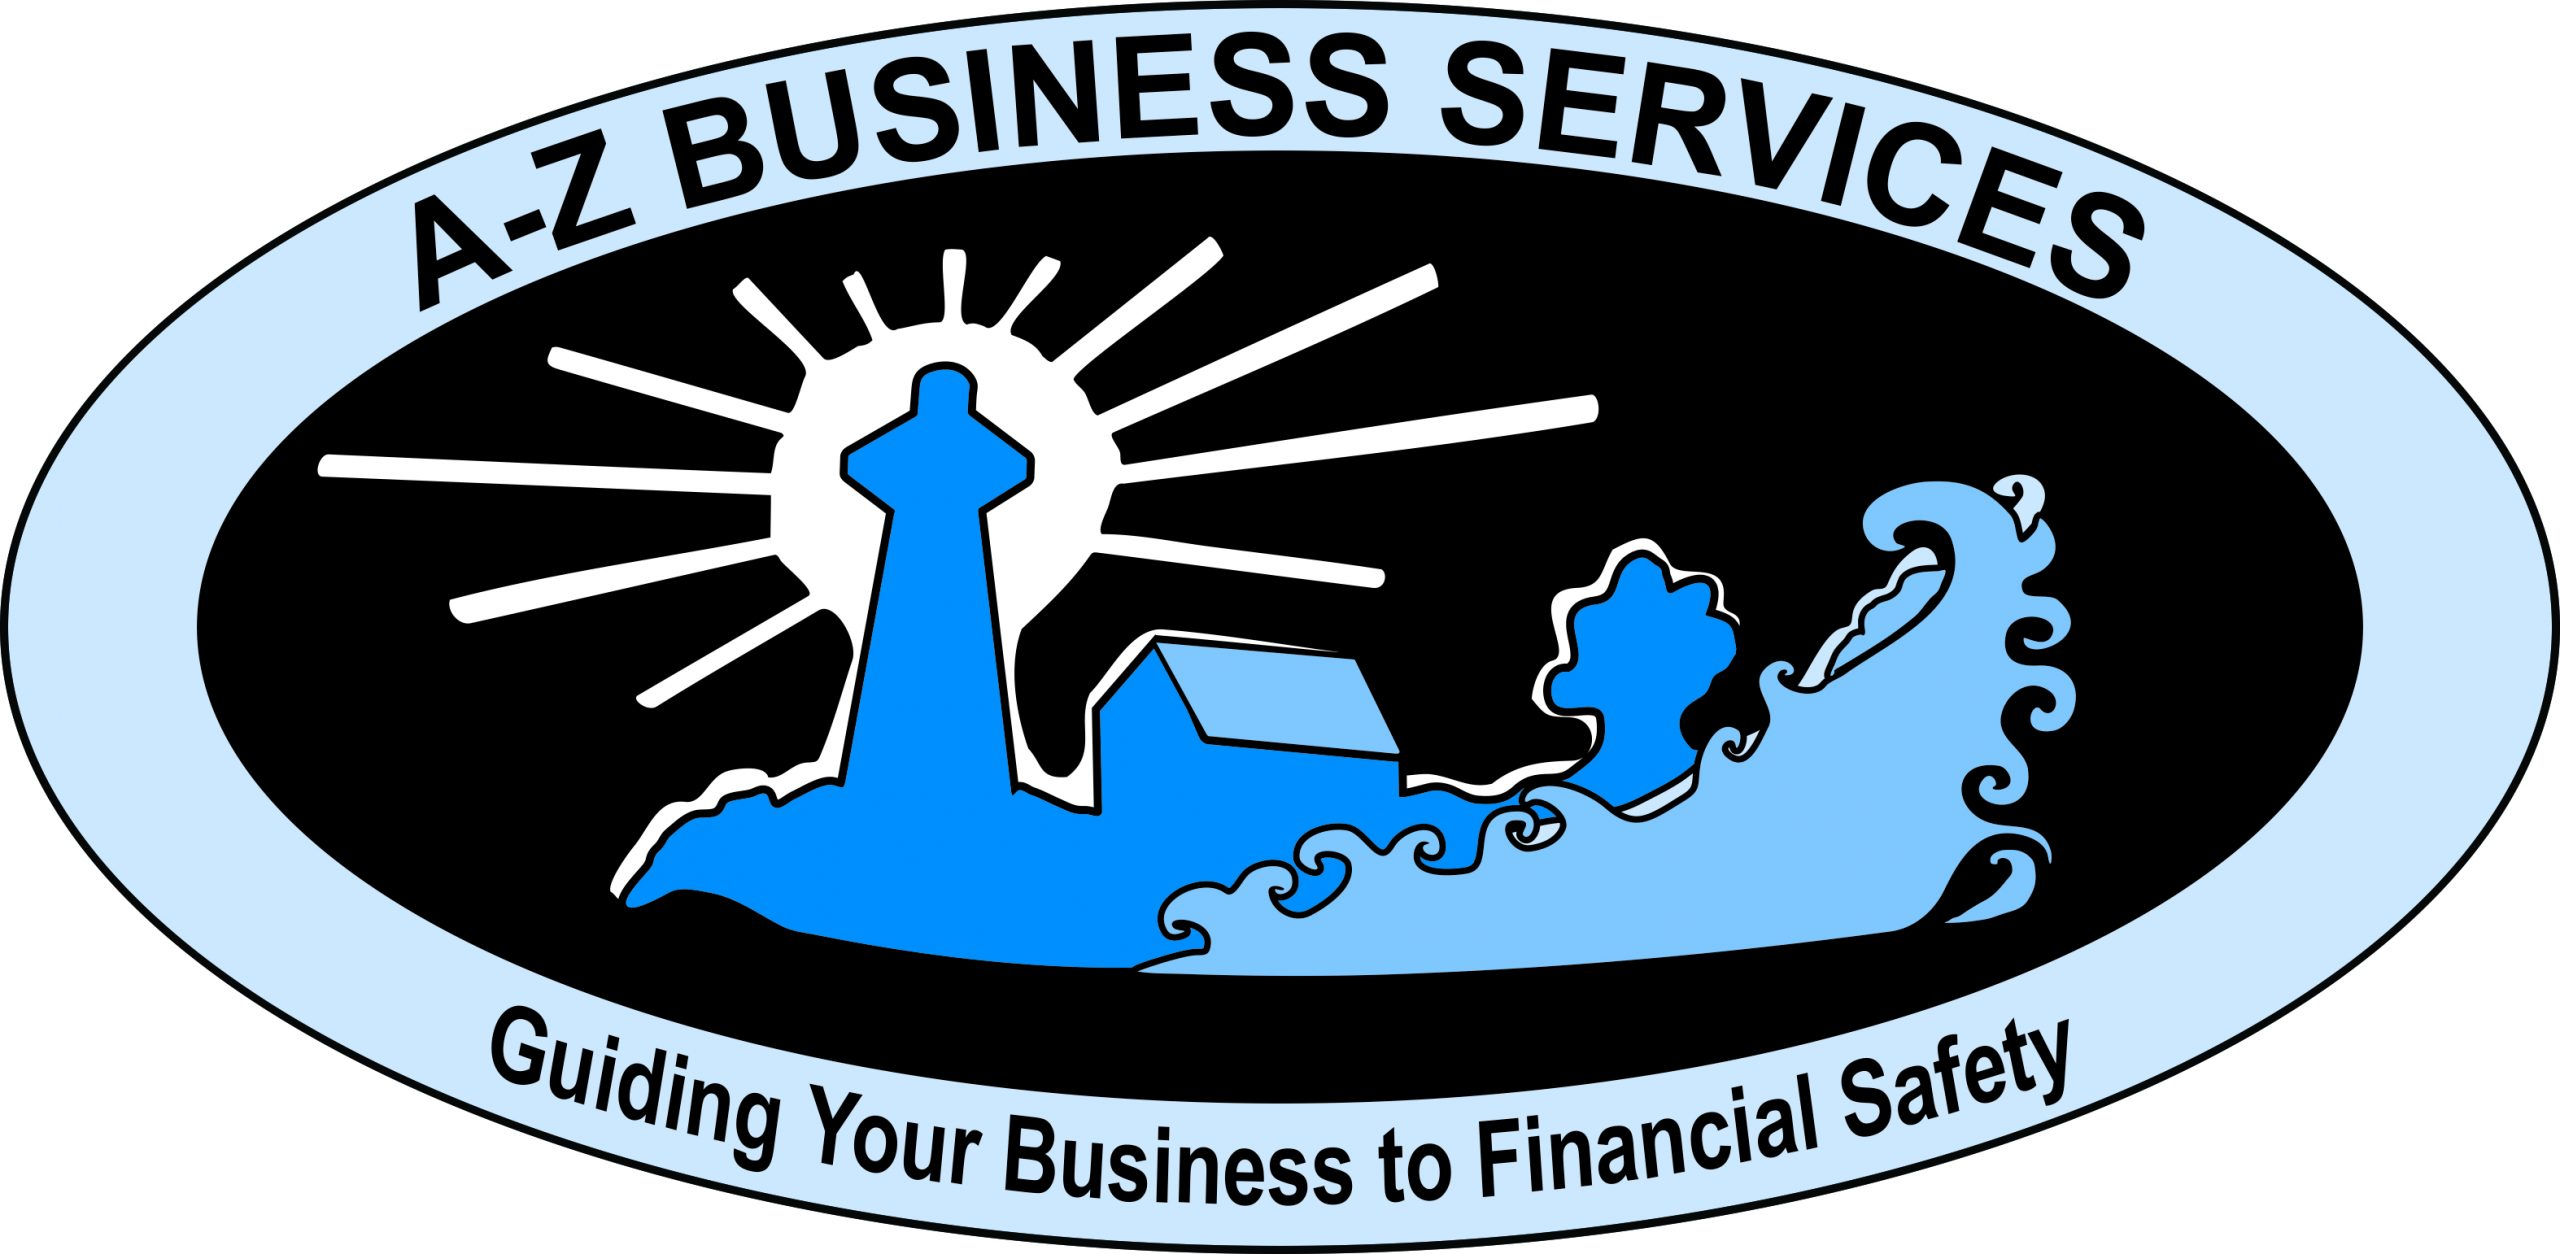 A-Z Business Services Courses